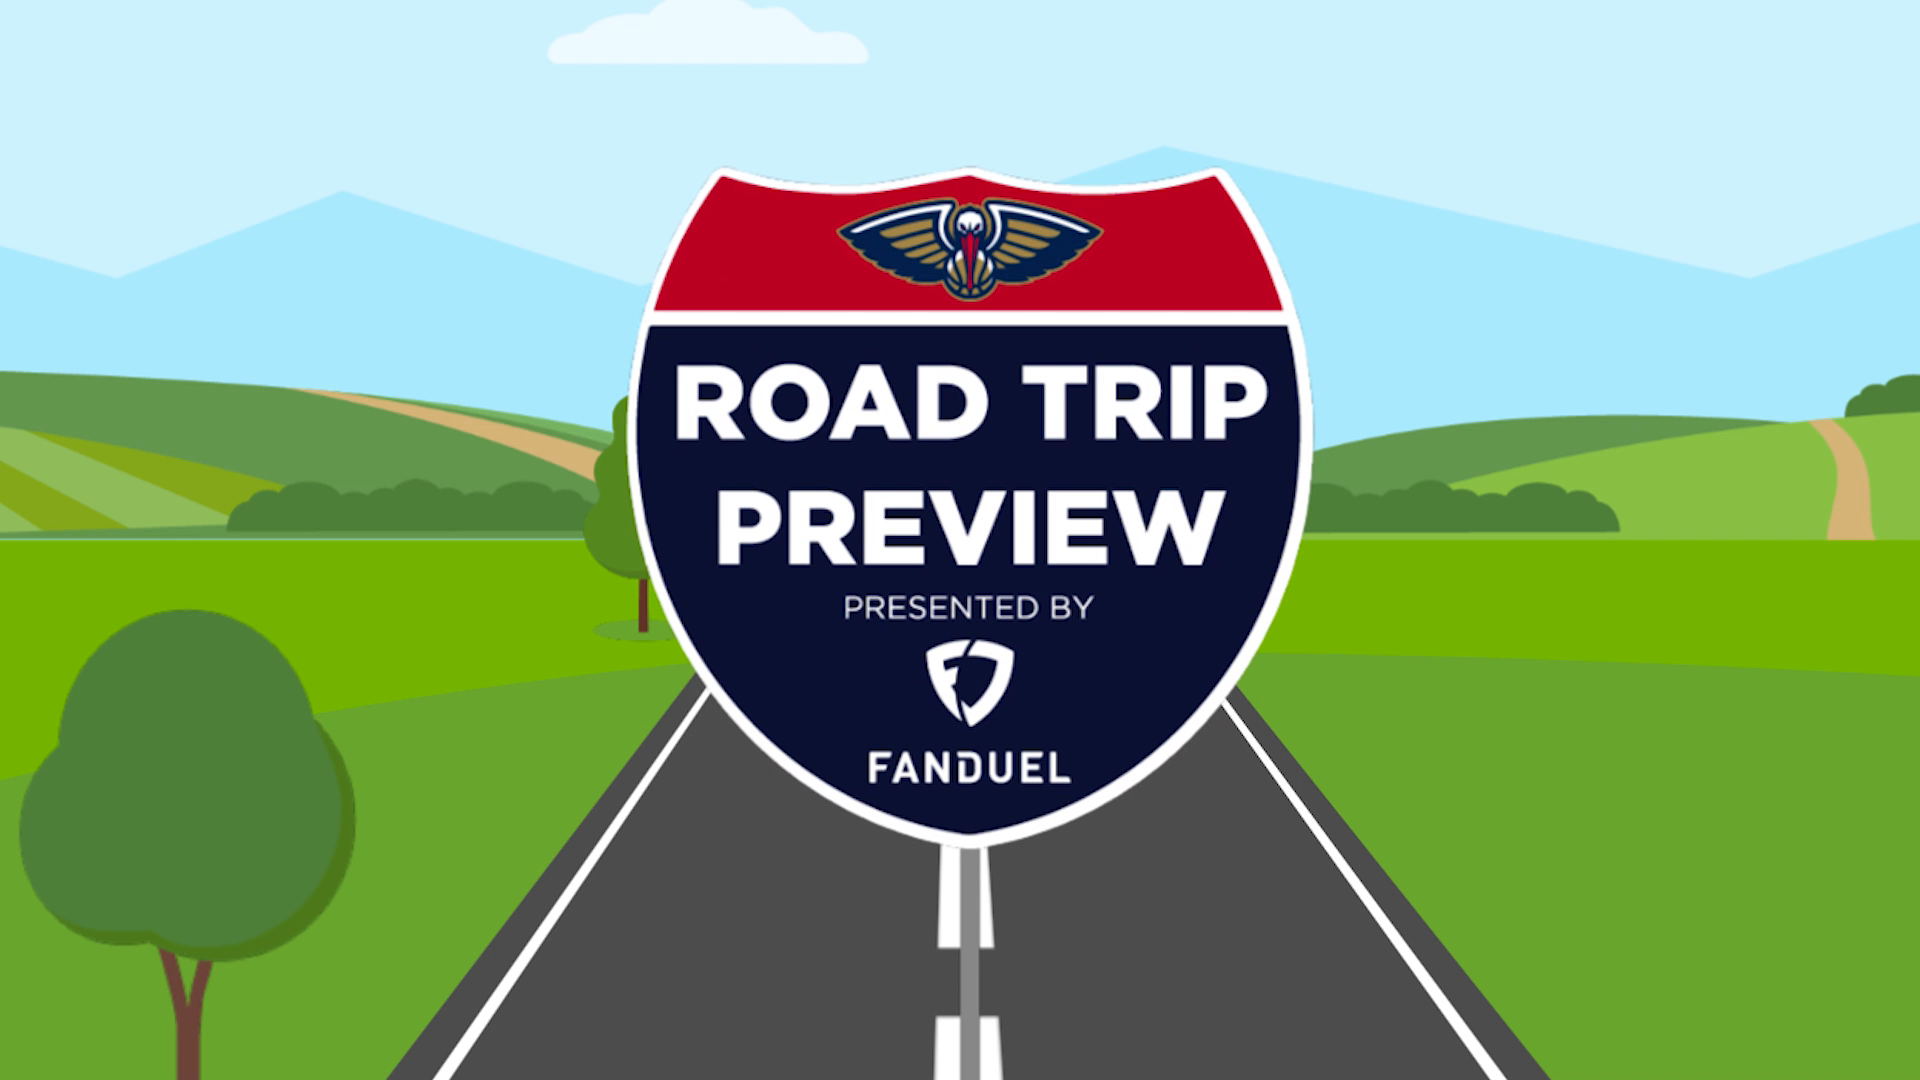 Pelicans Road Trip Preview presented by Fan Duel | Minnesota